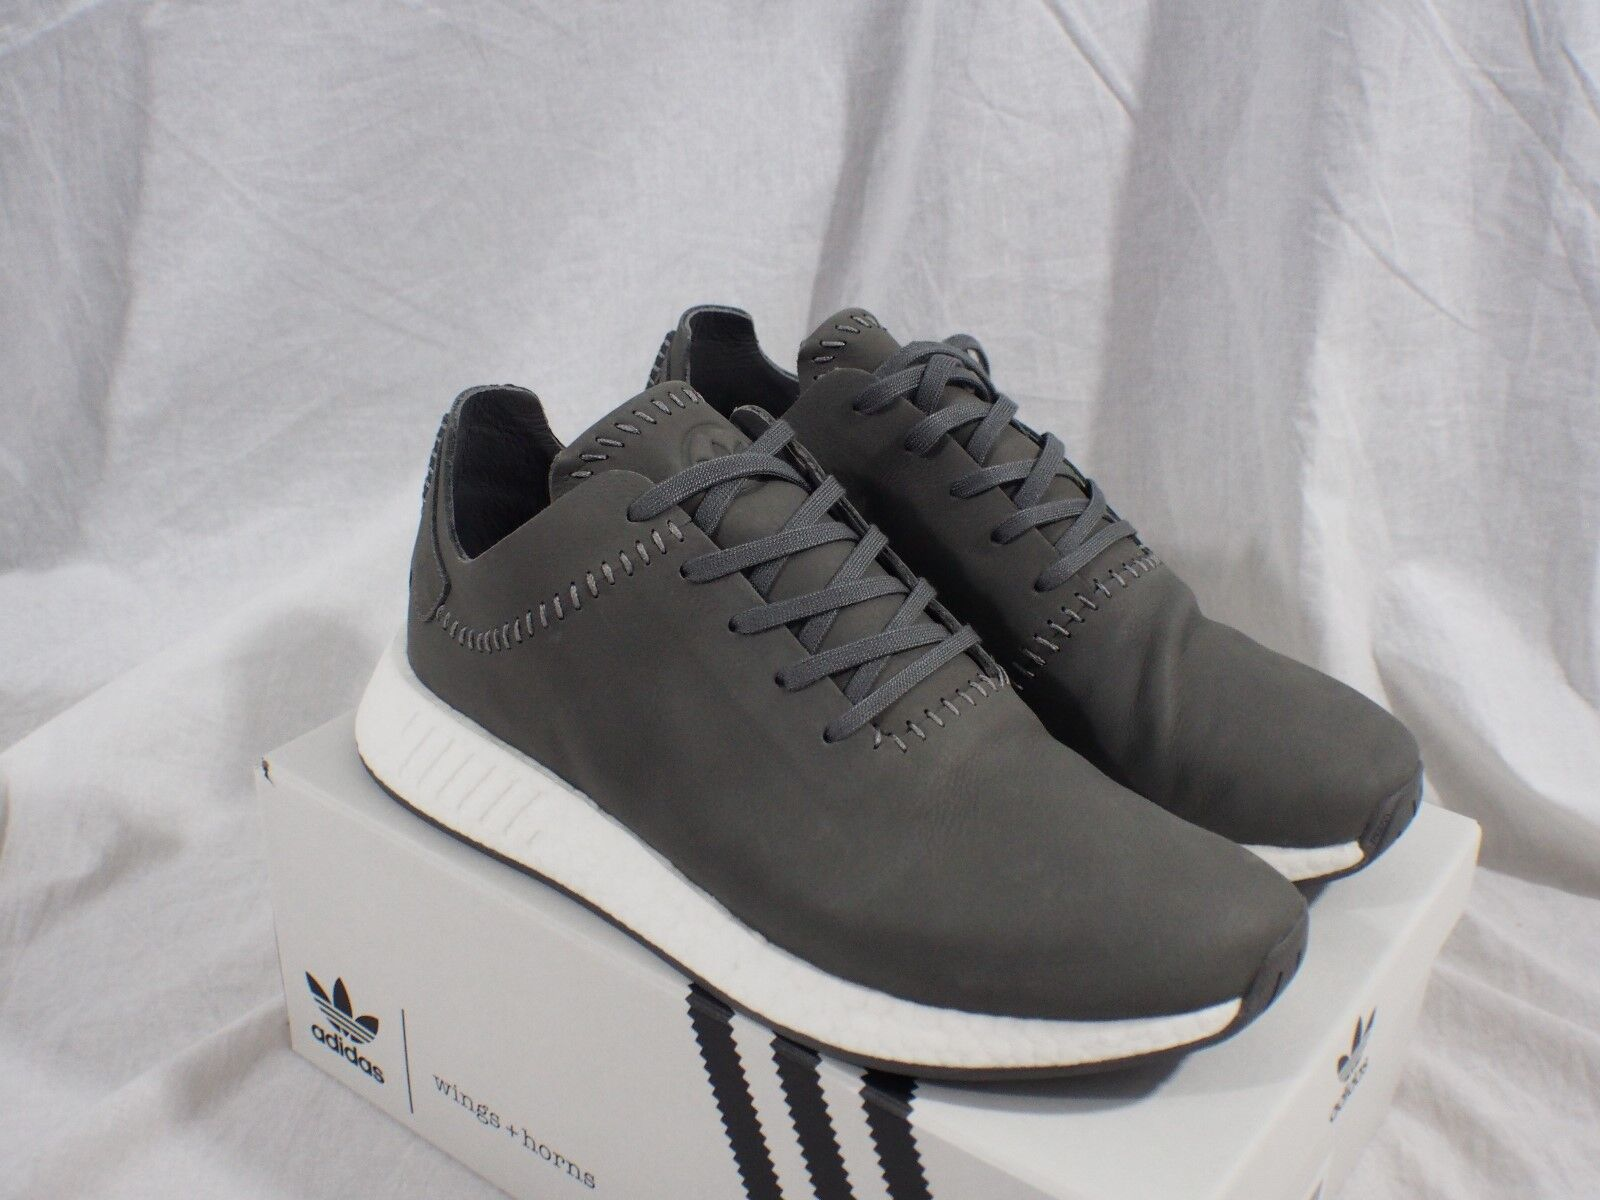 Adidas NMD R2 Wings + Horns BB3117 Ash Leather Men's size 10.5 US